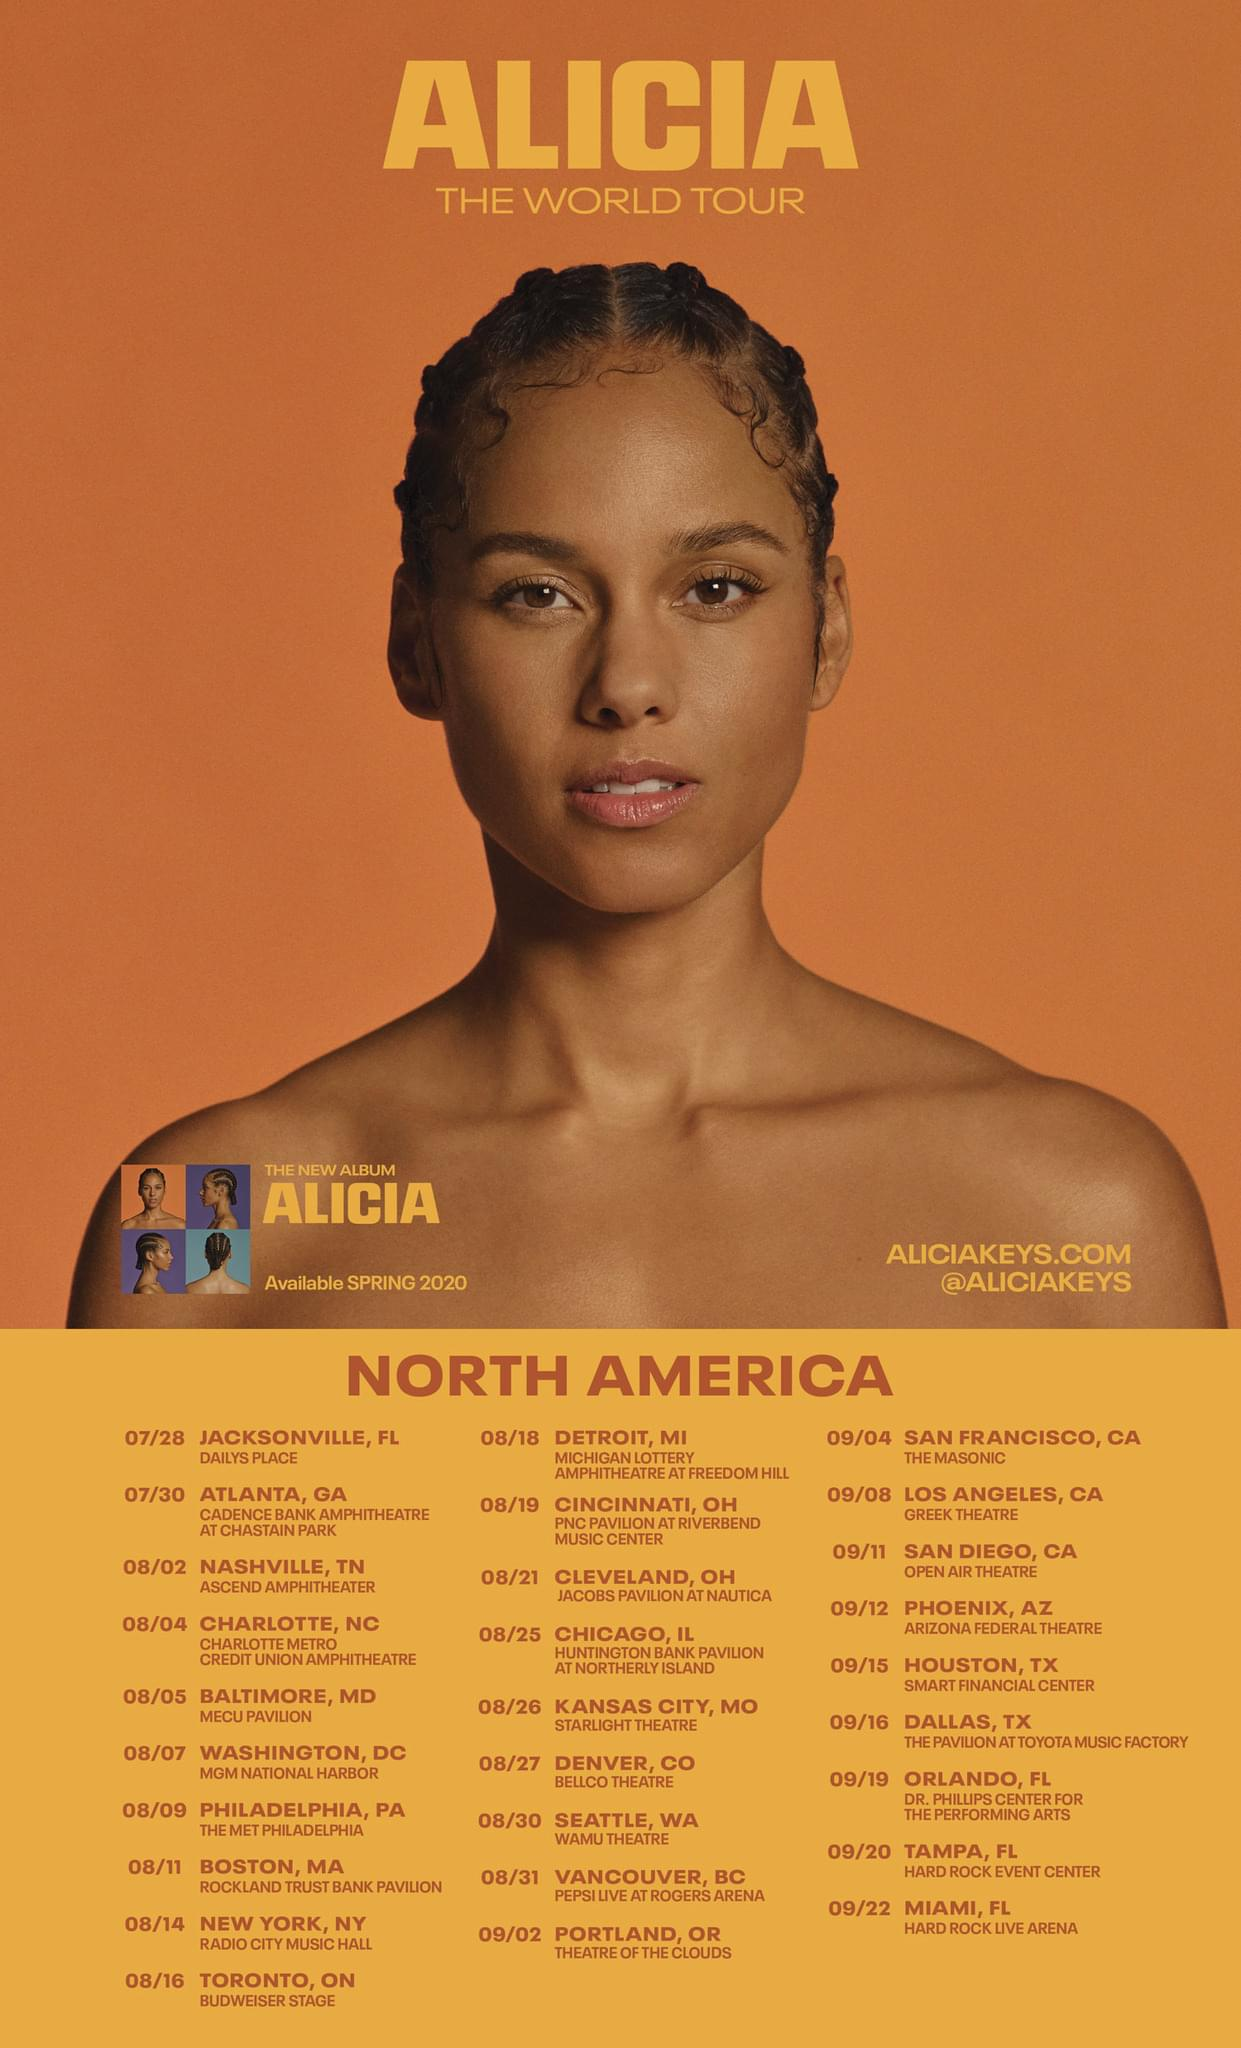 Alicia The World Tour